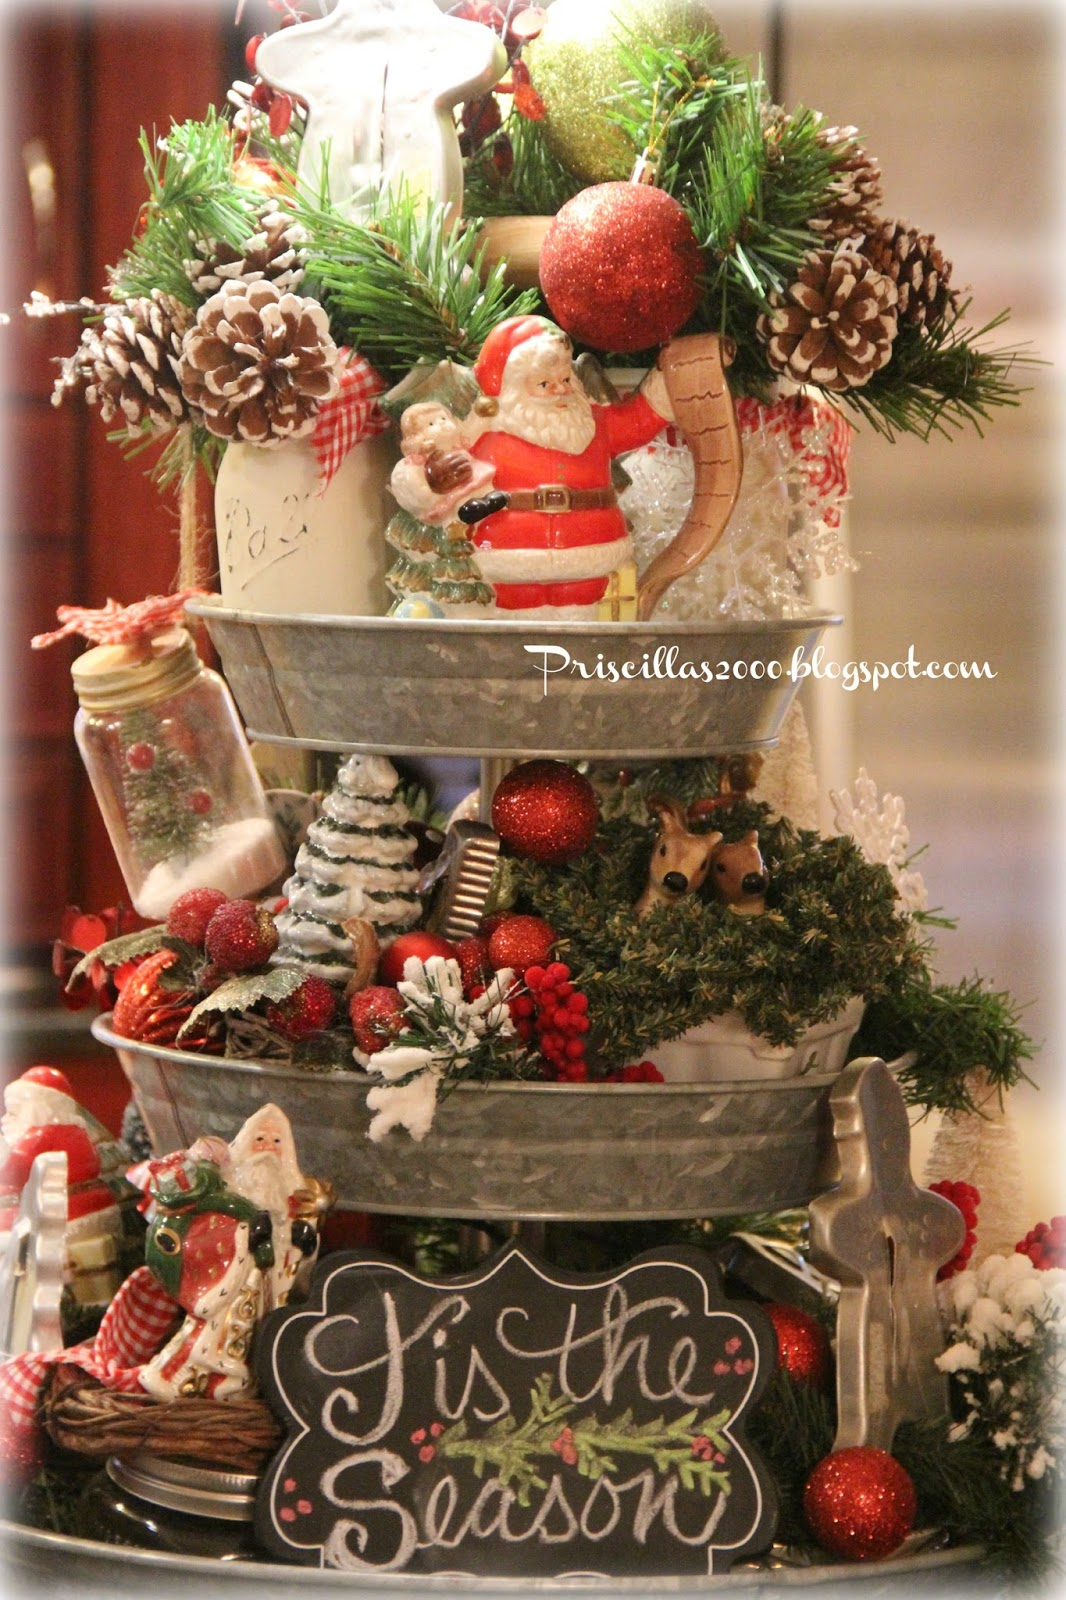 Xmas Decoration Ideas For Living Room: Priscillas: Christmas Galvanized Tiered Tray 2015